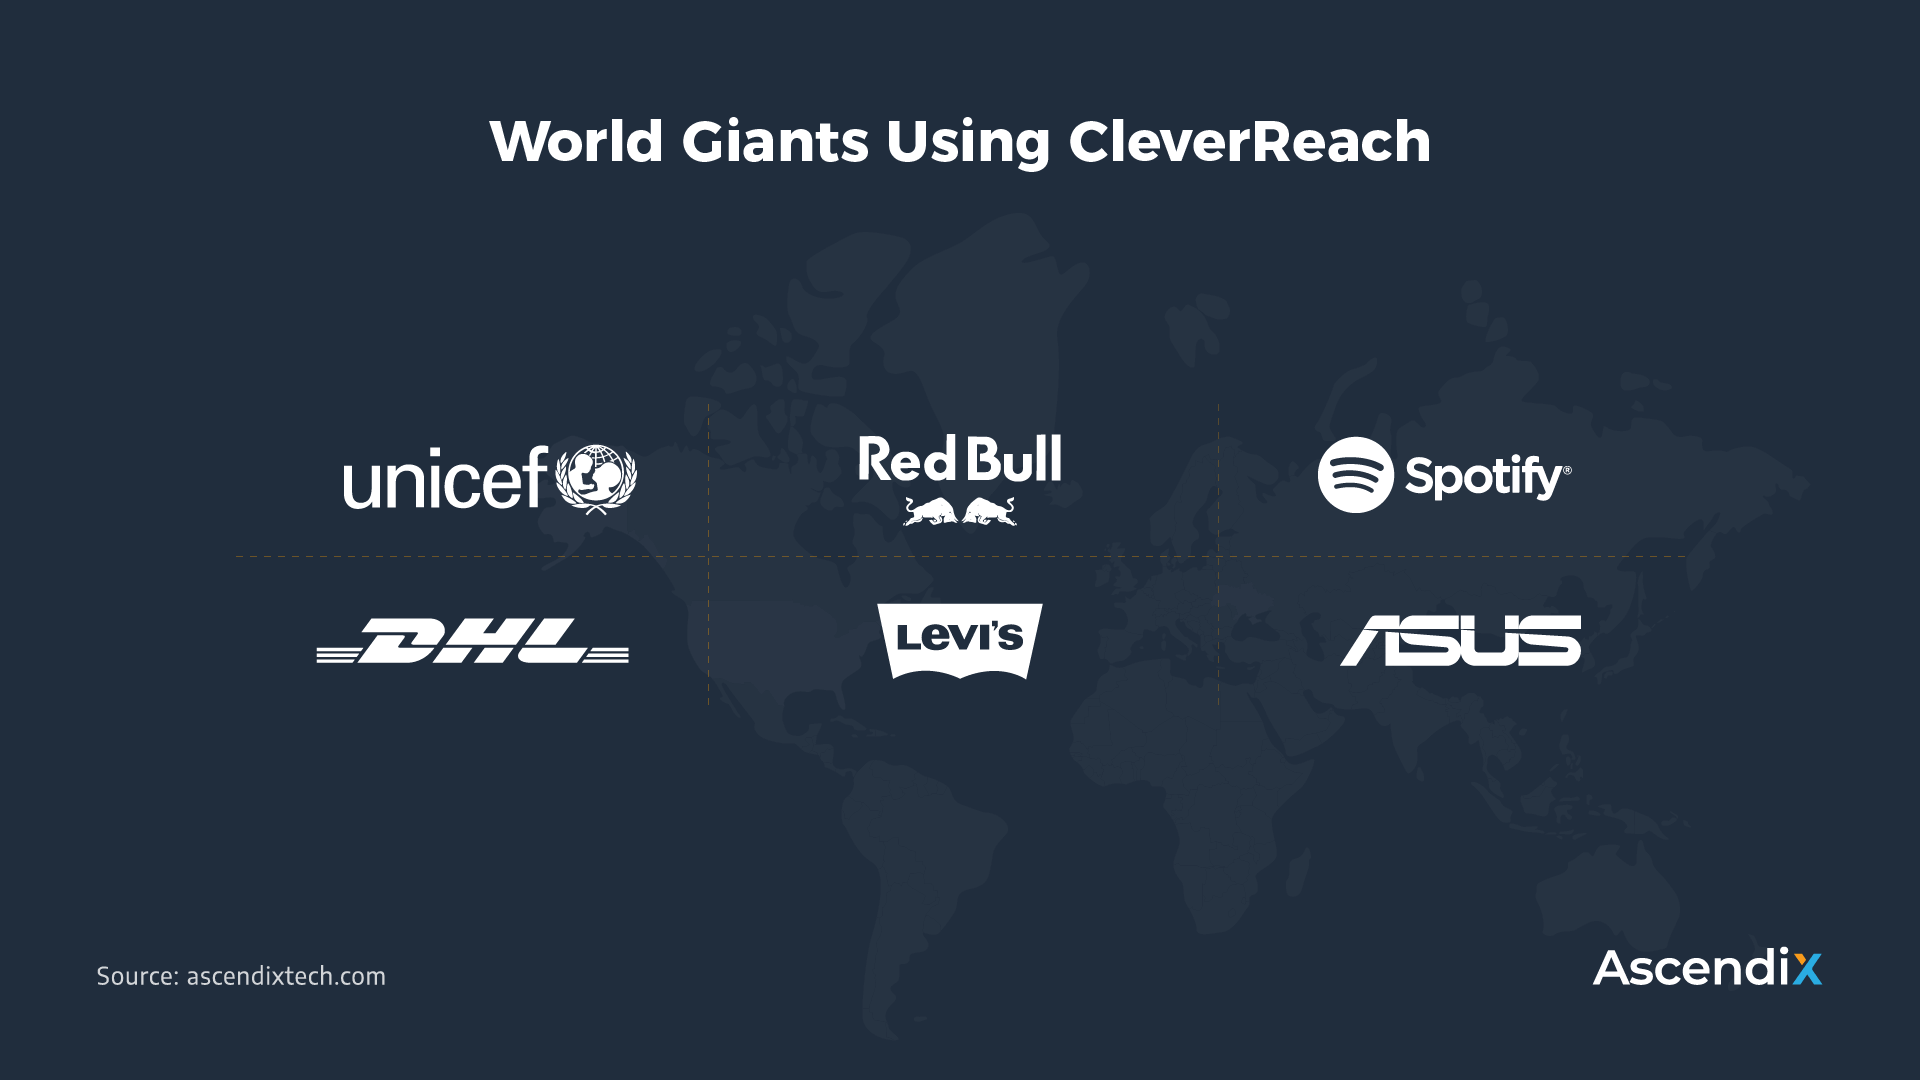 World Giants Using CleverReach